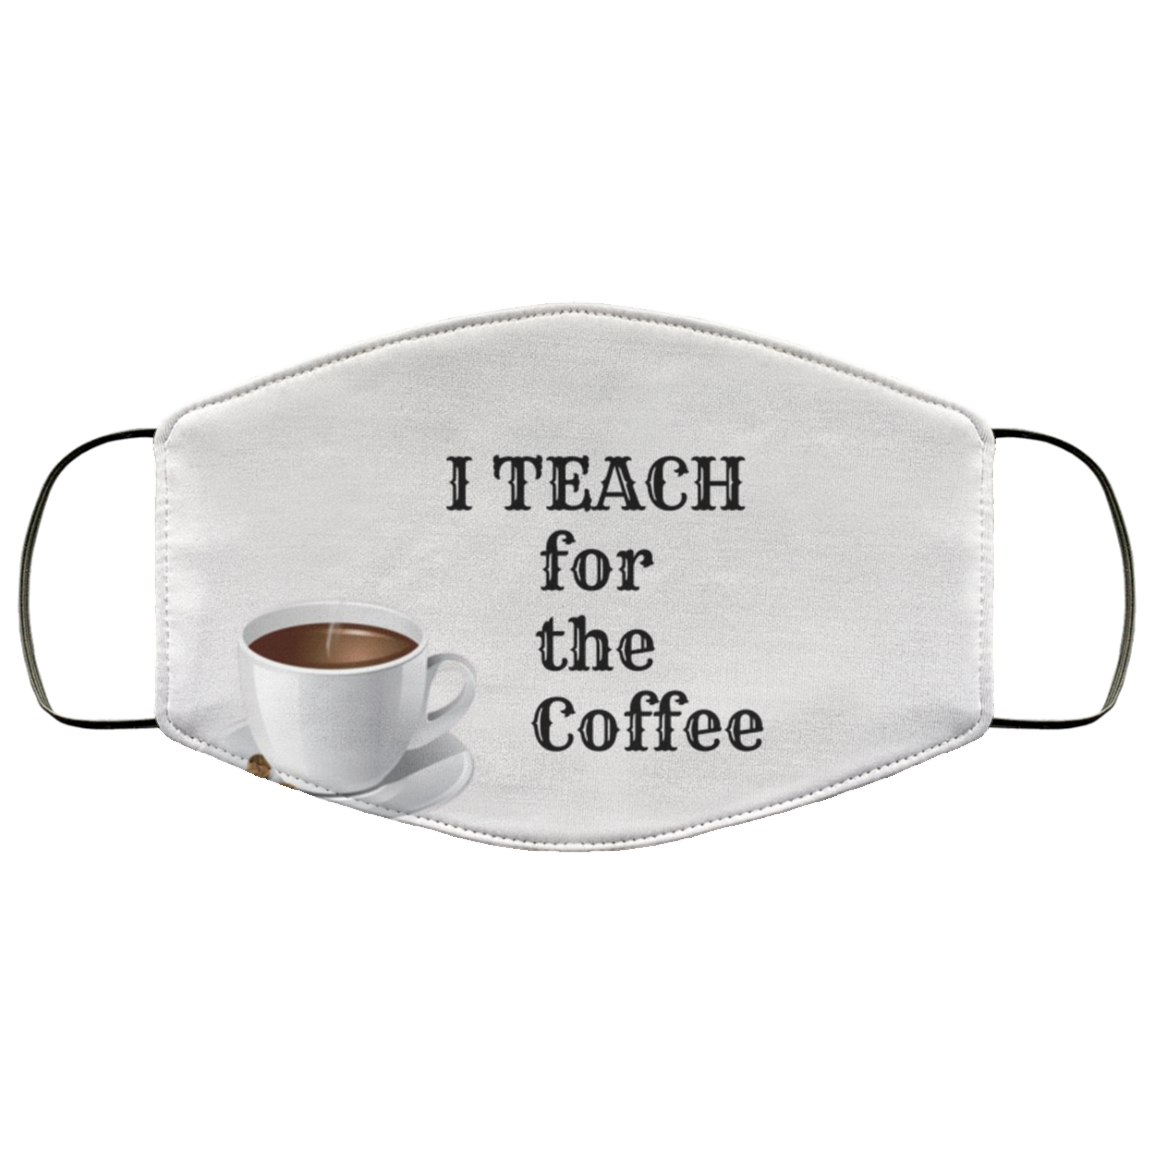 Teach for the Coffee Face Mask